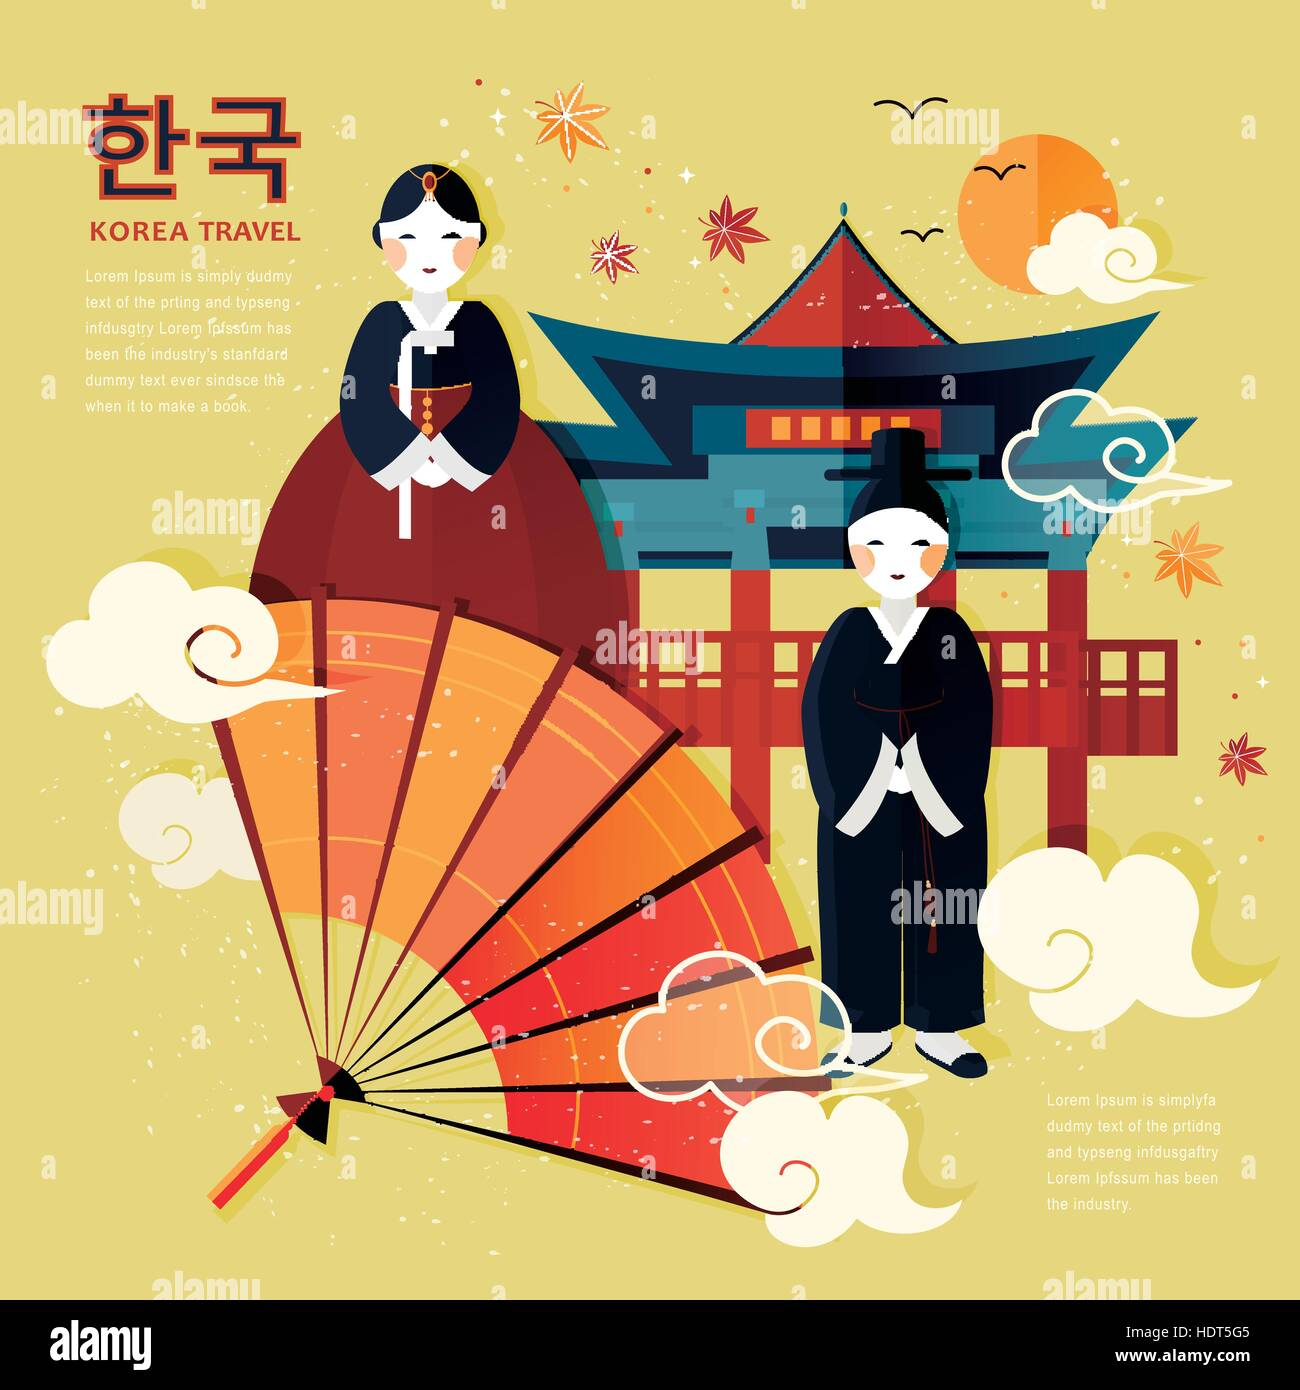 Korean culture stock vector images alamy traditional korean culture symbol in travel poster korea in korean words on upper left biocorpaavc Image collections